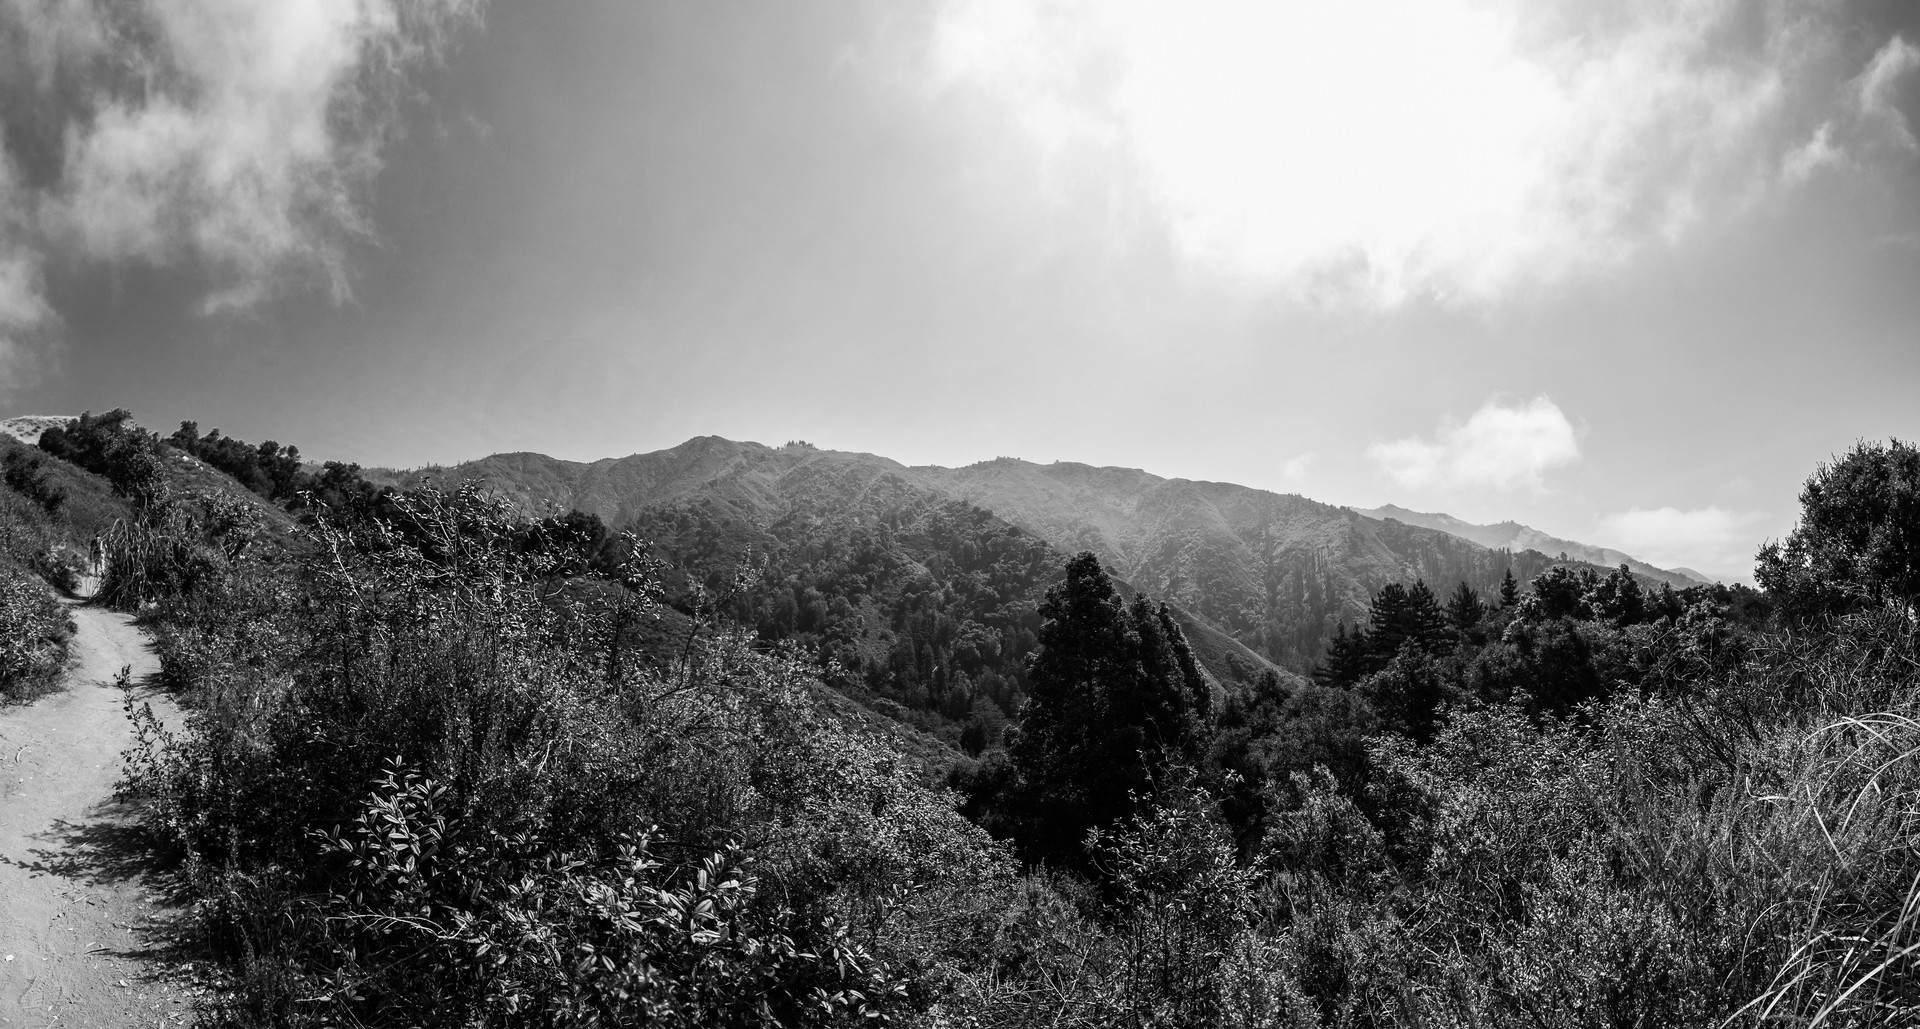 Black and white image from Pfeiffer Big Sur State Park